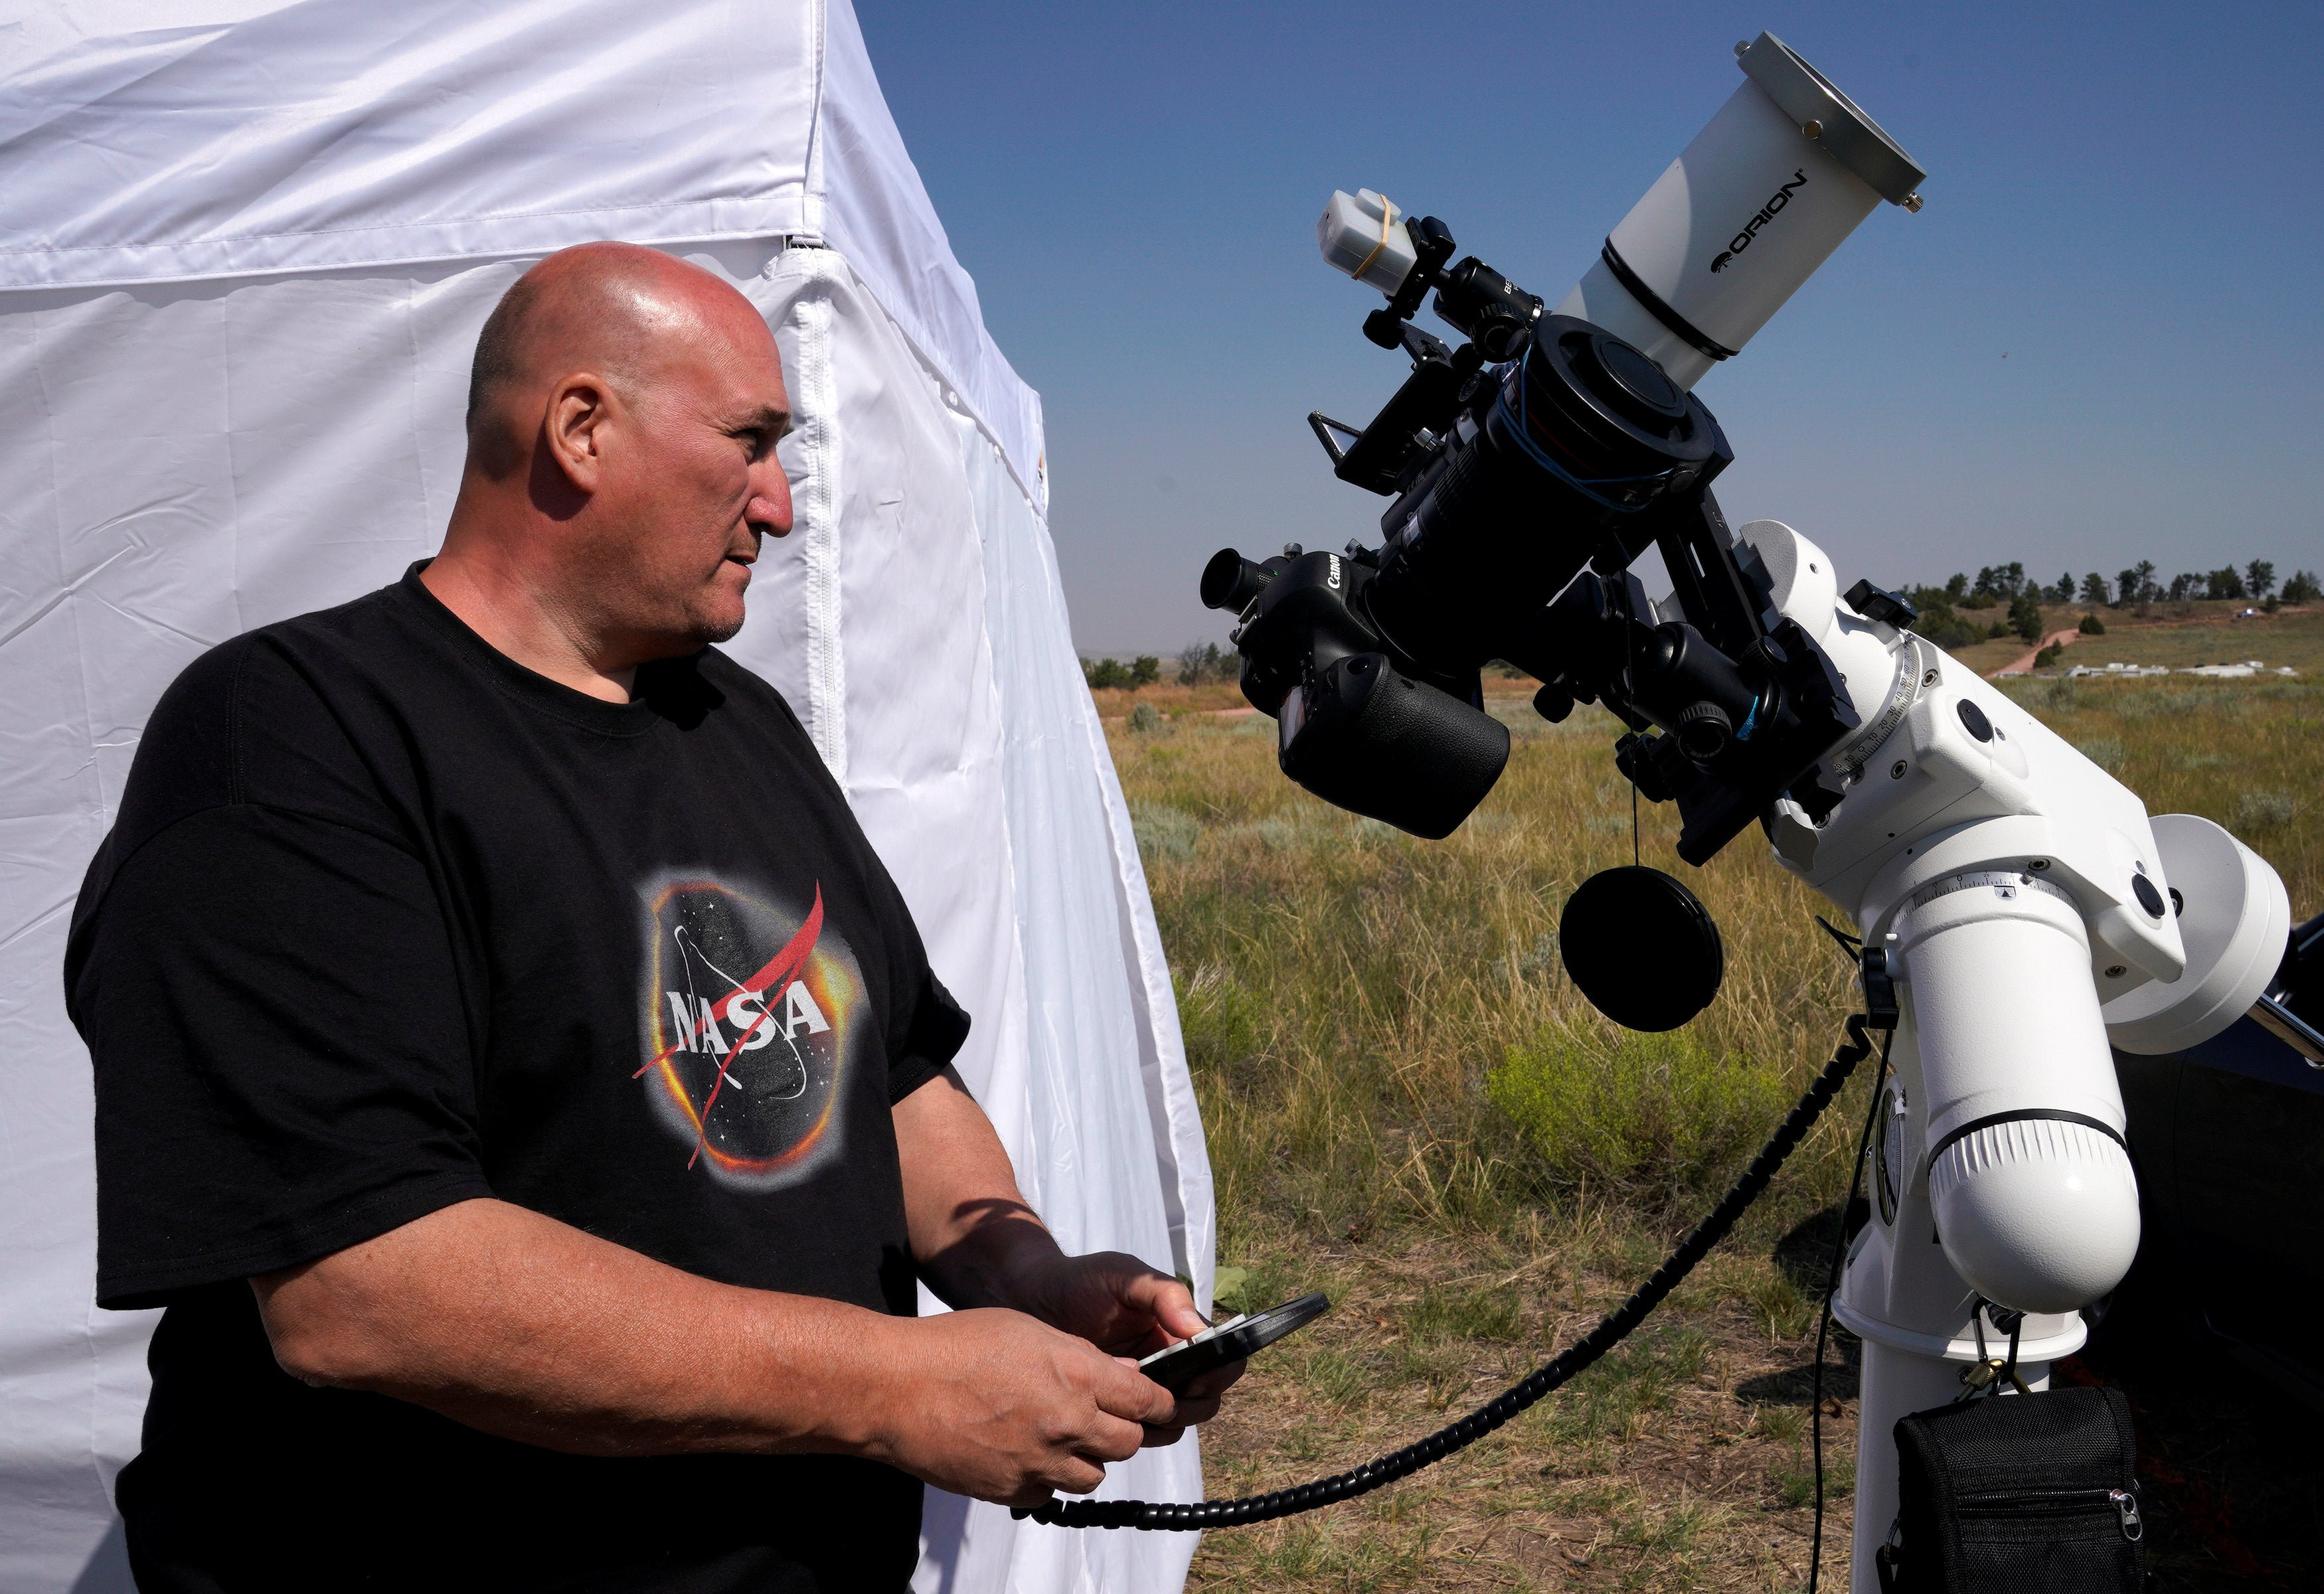 Rick Roty works with his telescope in a designated eclipse viewing area in a campground near Guernsey, Wyoming, U.S., August 20, 2017.